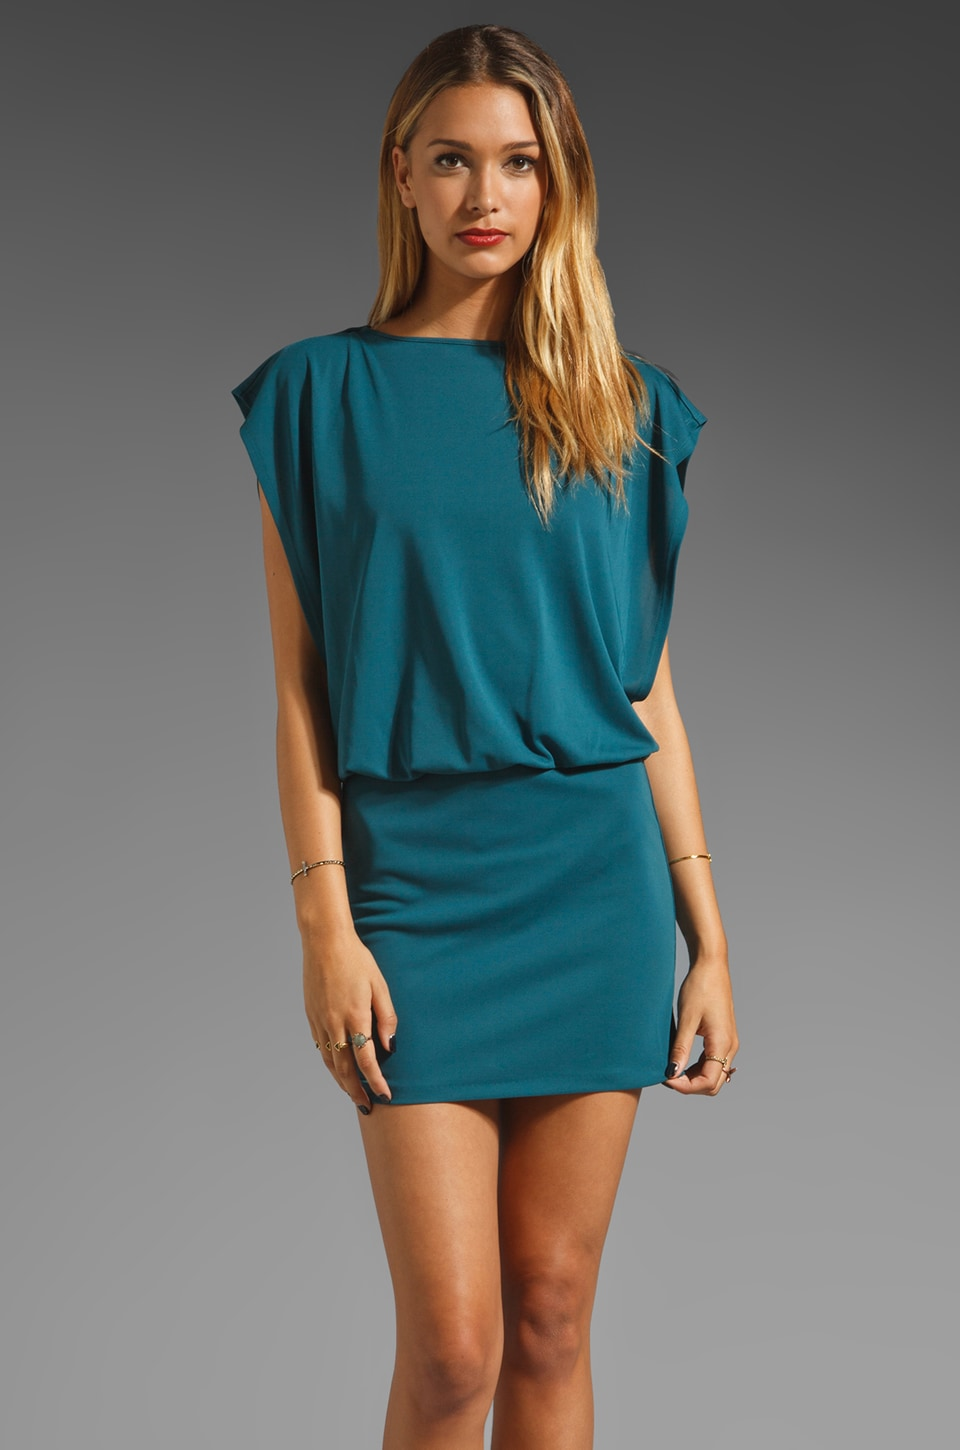 Susana Monaco Cadence Dress in Lagoon